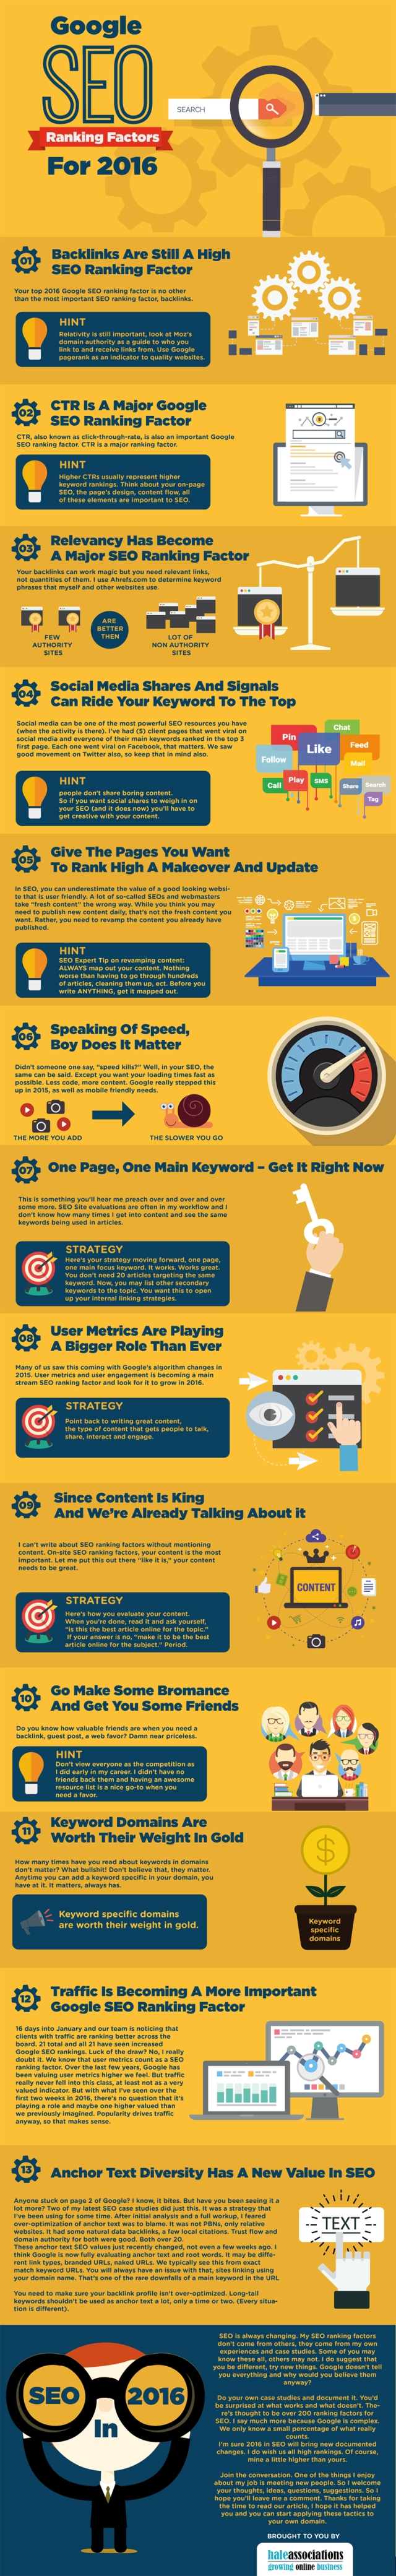 SEO in 2016 The 13 Ranking Factors You Should Concentrate On